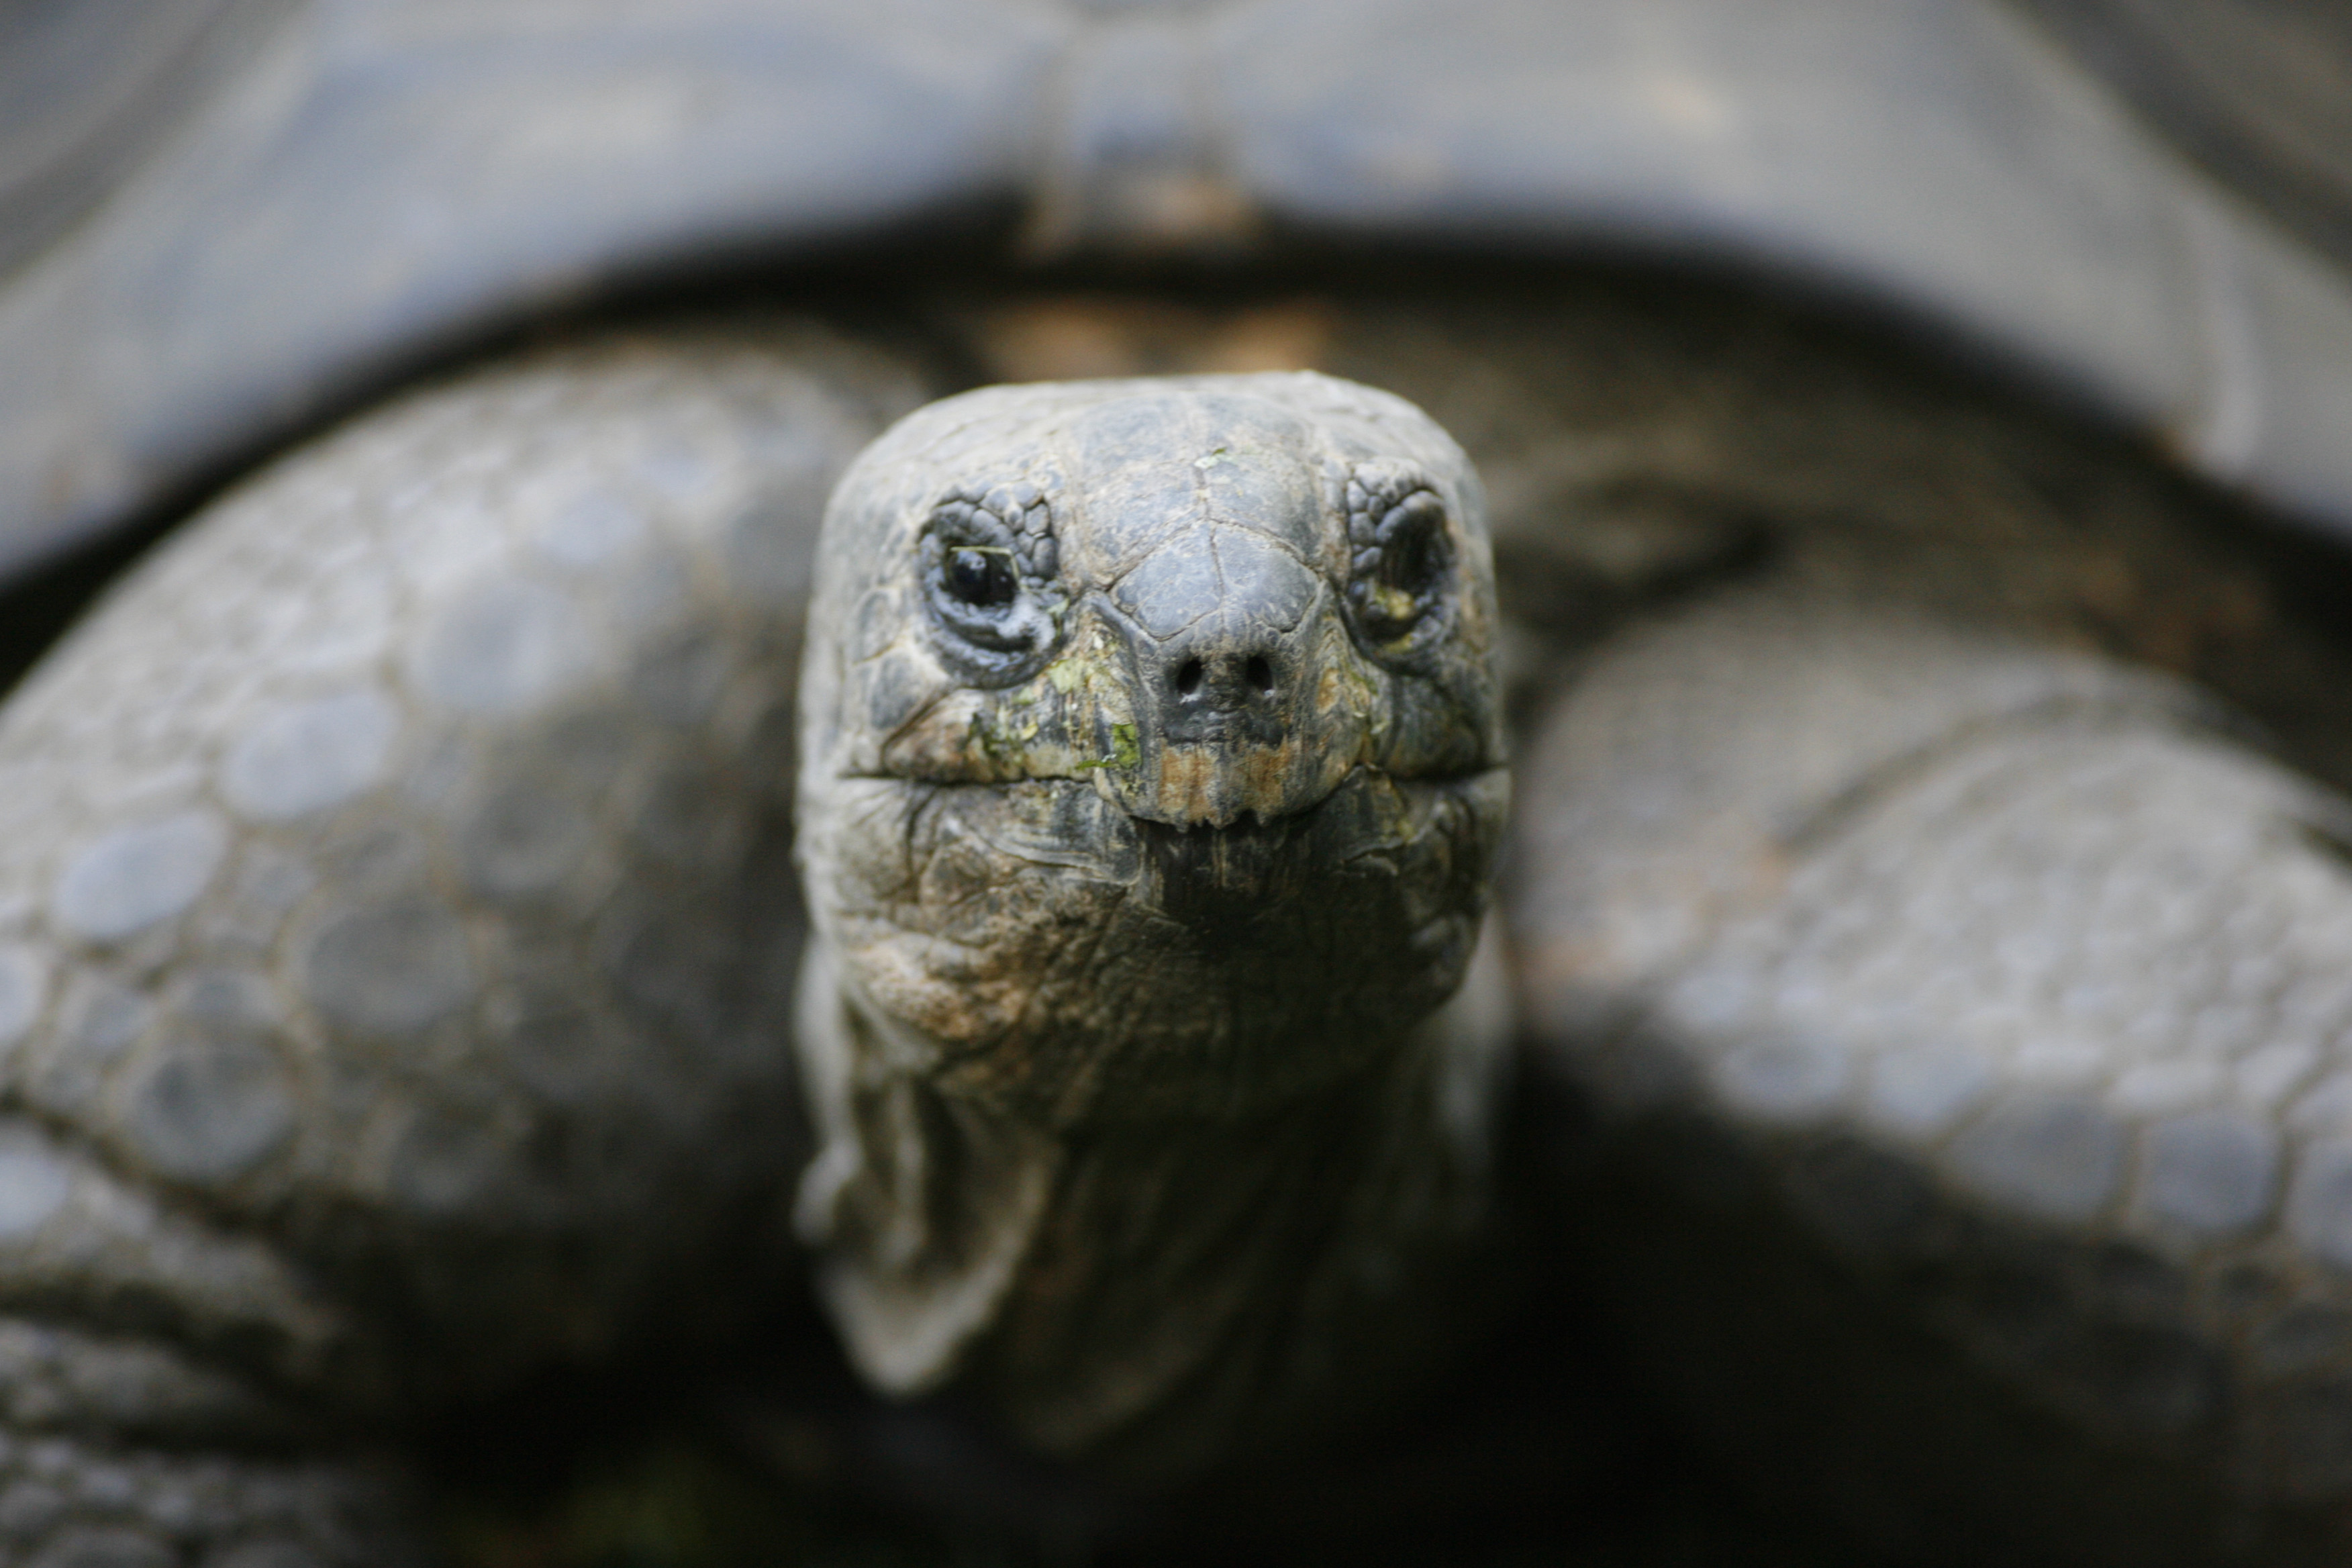 A giant turtle is pictured at the zoo in Duisburg on Sept. 24, 2007.